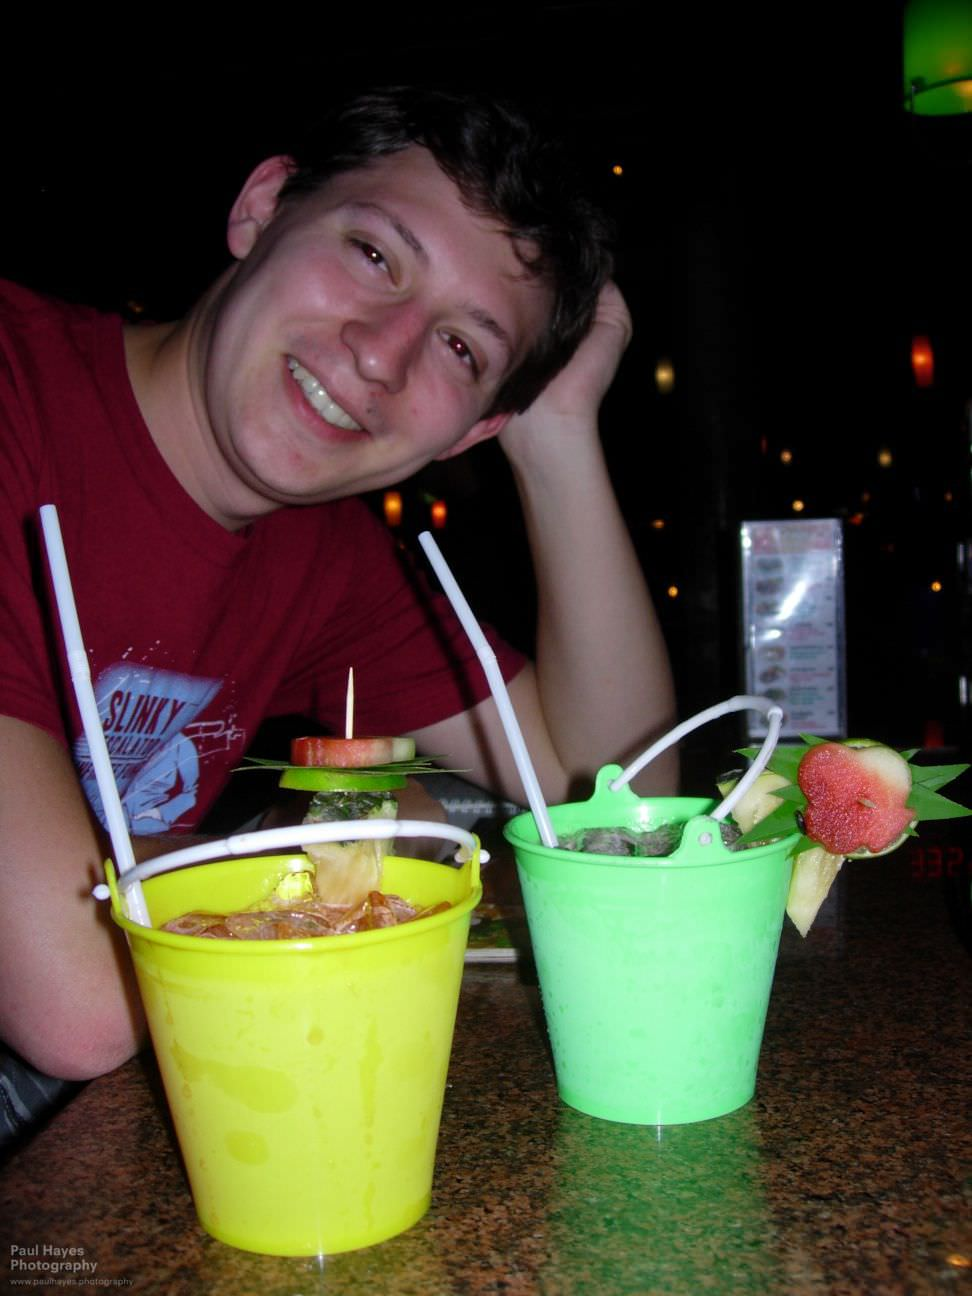 Cocktails in buckets at The Good View restaurant